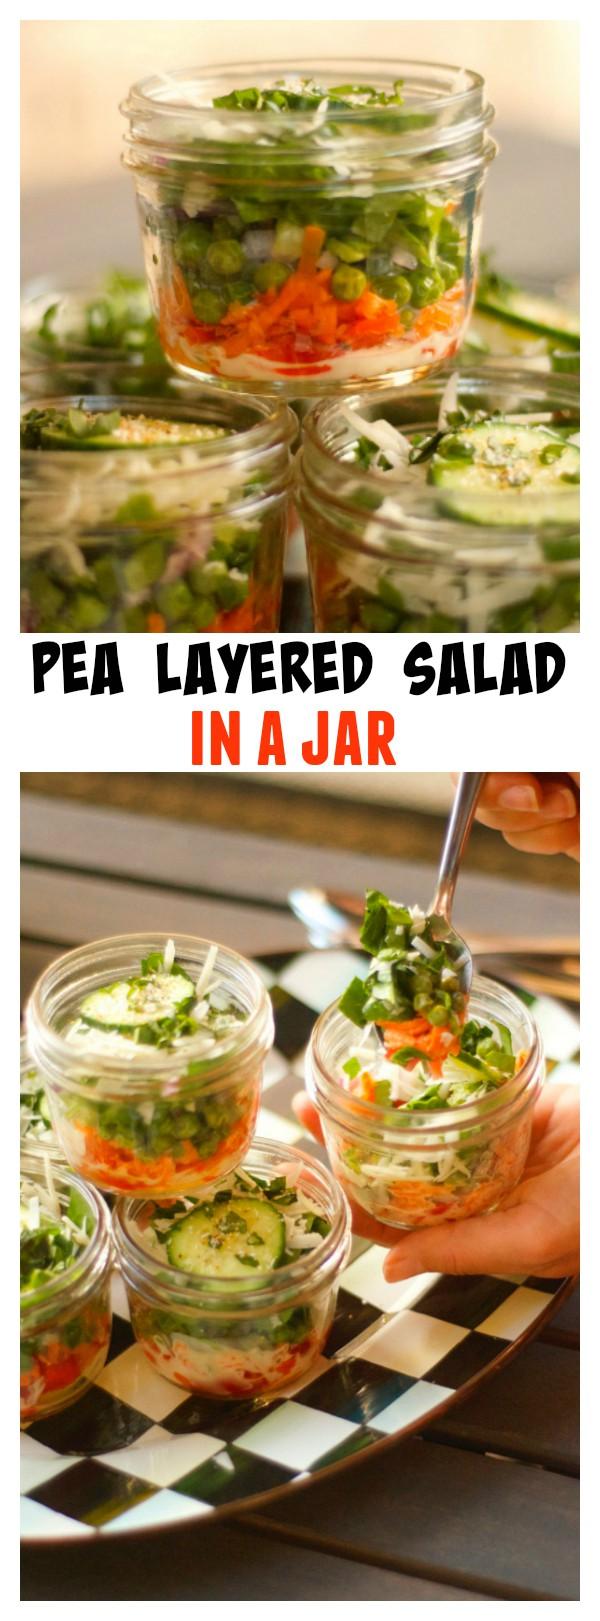 Pea Layered Salad in a Jar